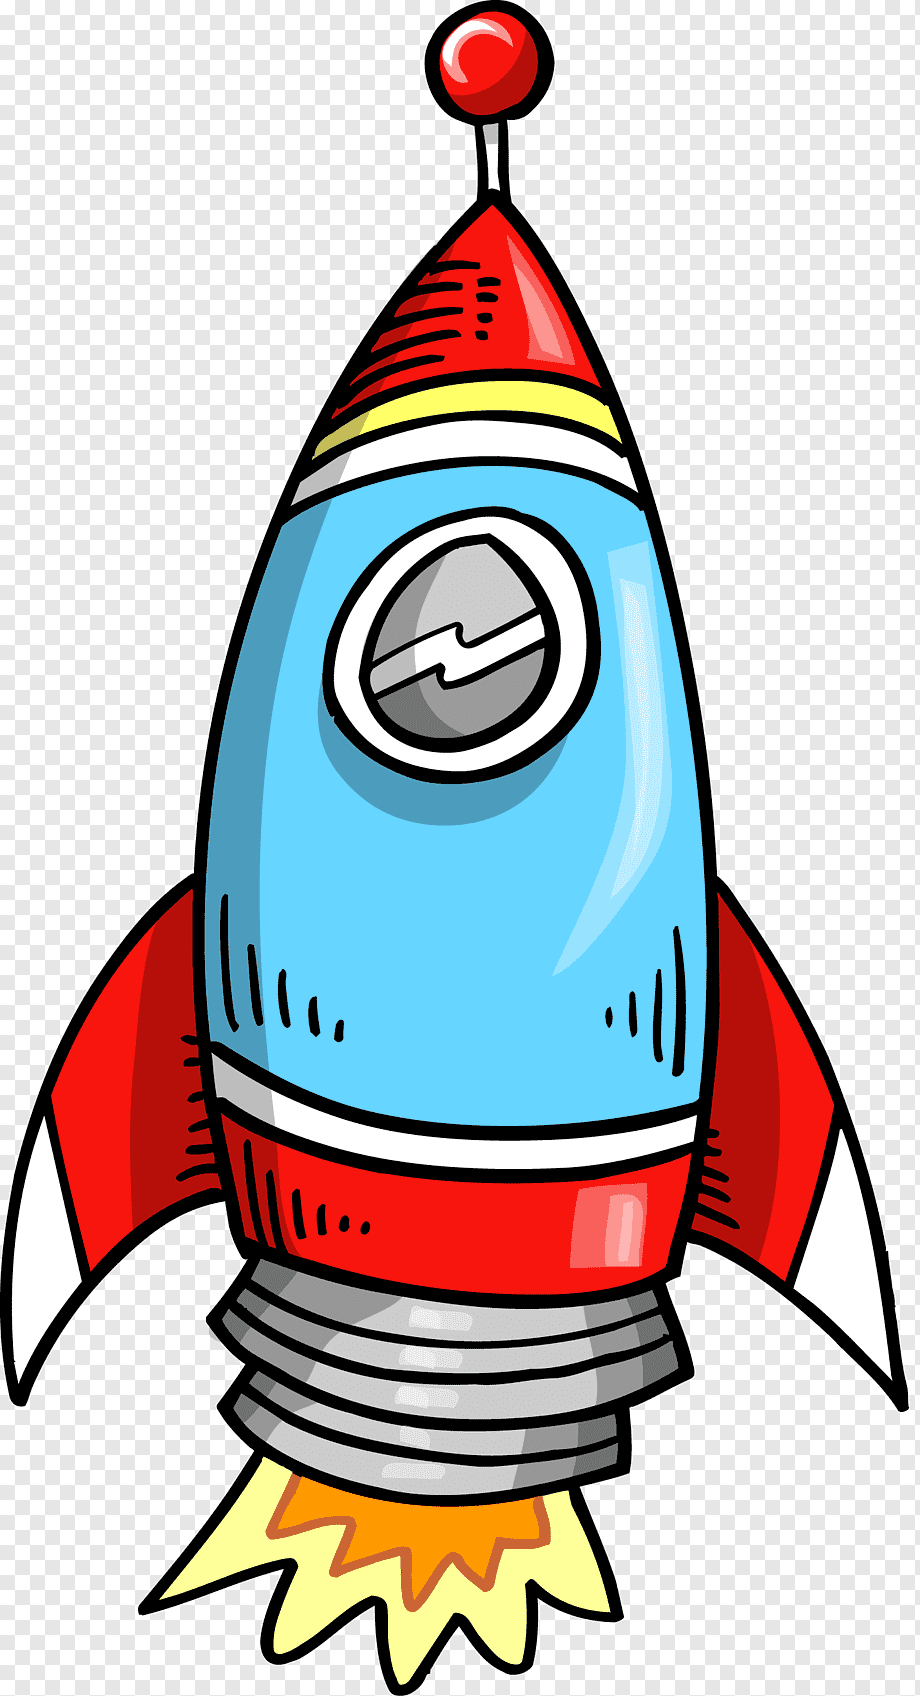 Gambar Roket Animasi : gambar, roket, animasi, Rocket,, Rocket, Drawing,, Material, Cartoon, Character,, Template,, Spacecraft, PNGWing